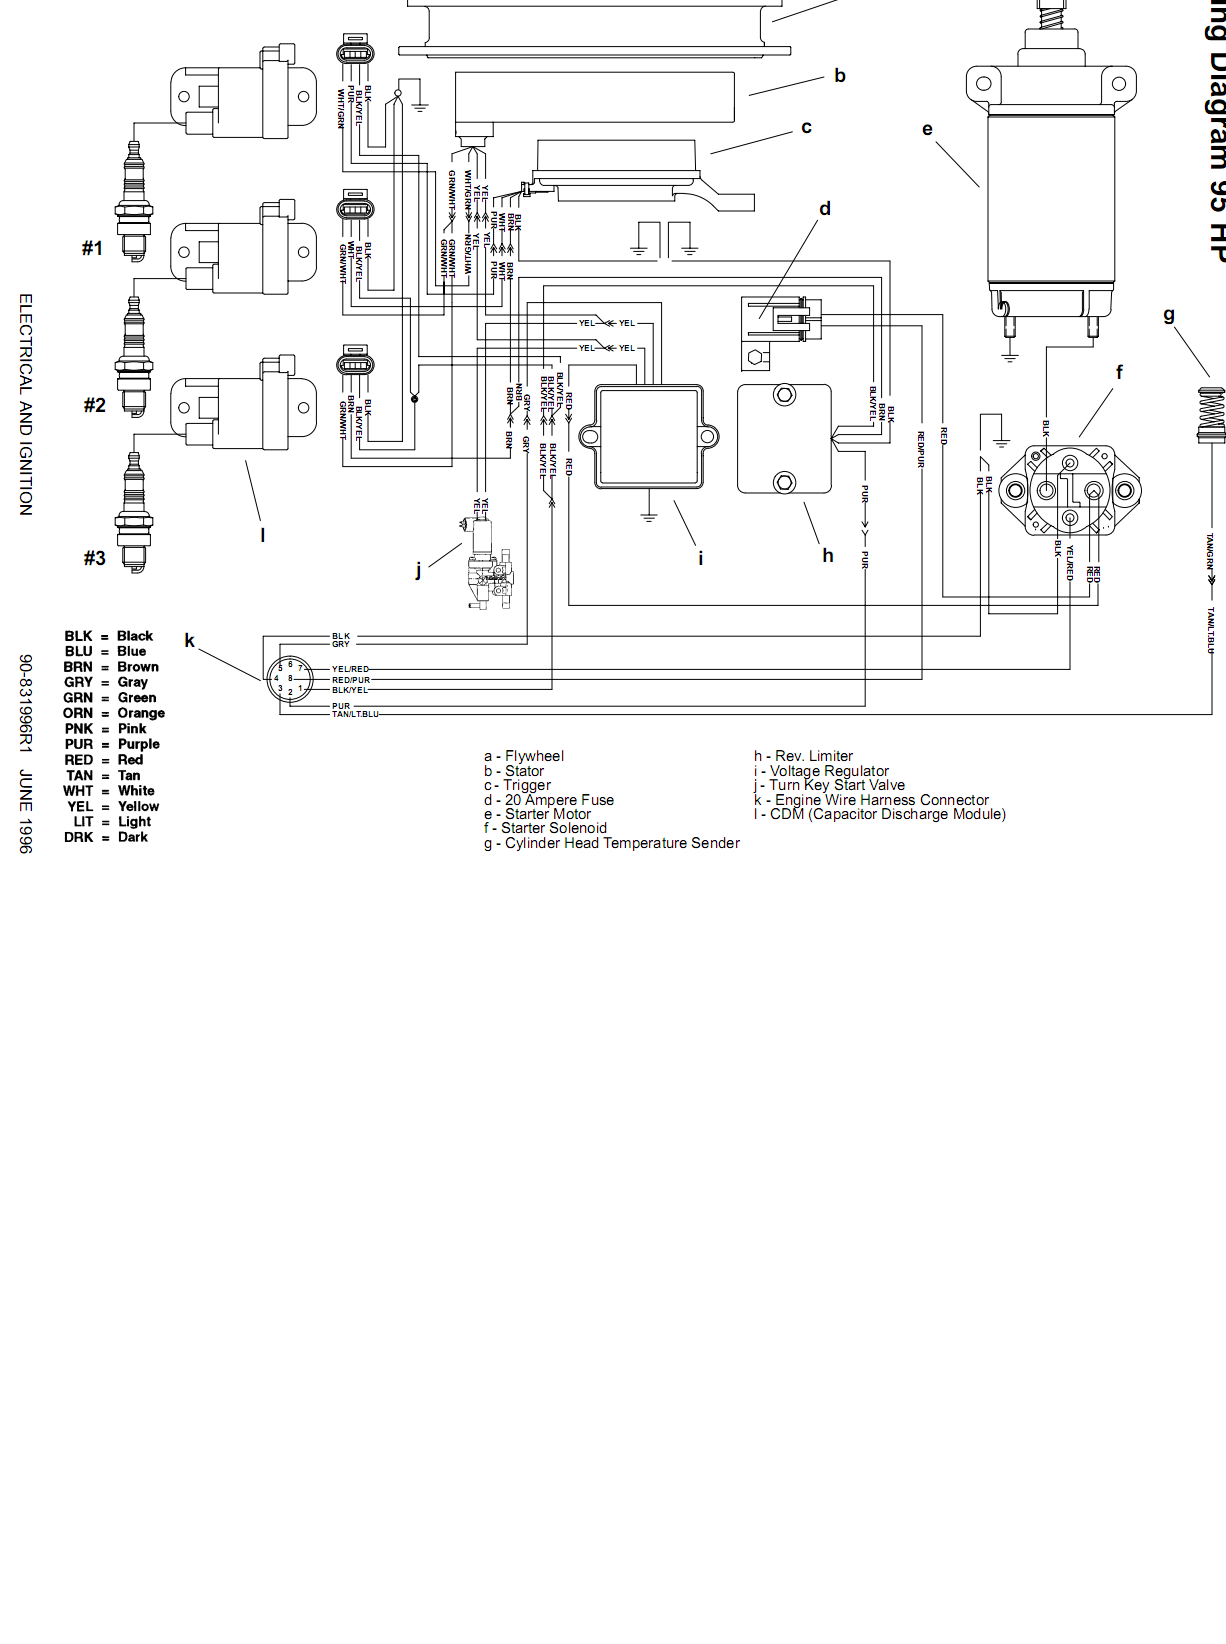 2006 optimax wiring diagram